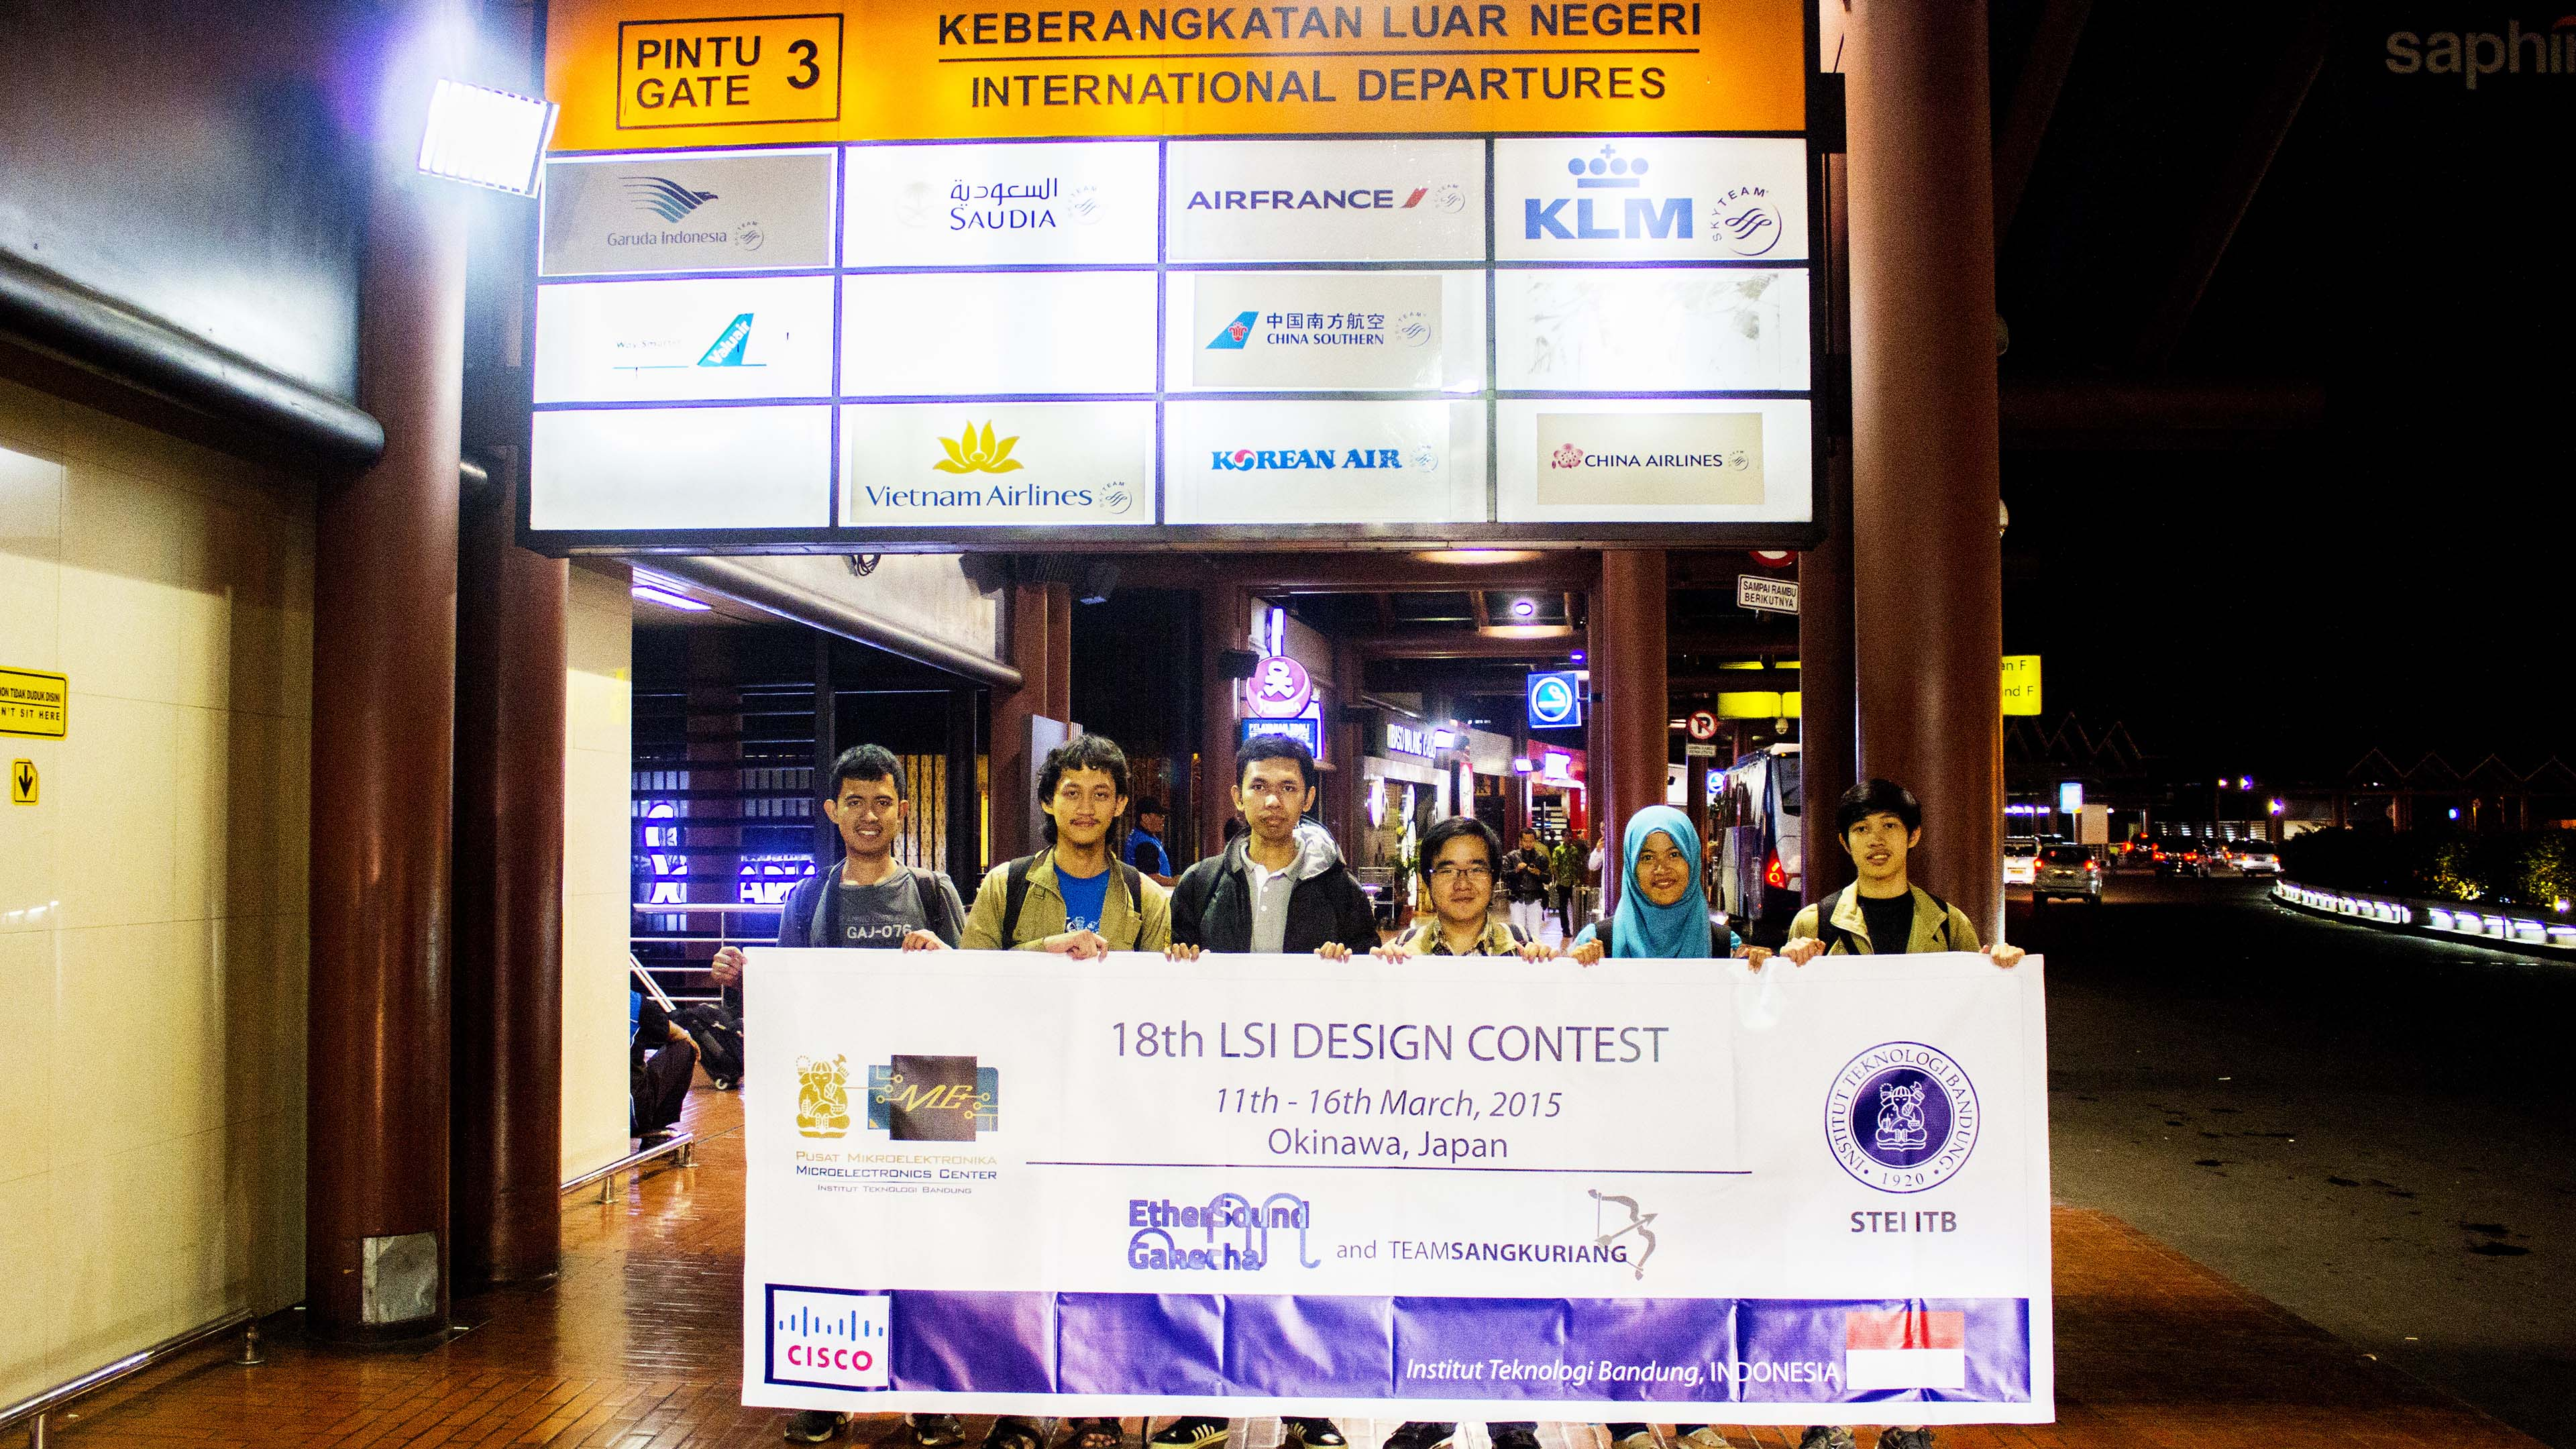 Indonesia Delegation for The 18th LSI Design Contest prior to departure to Japan